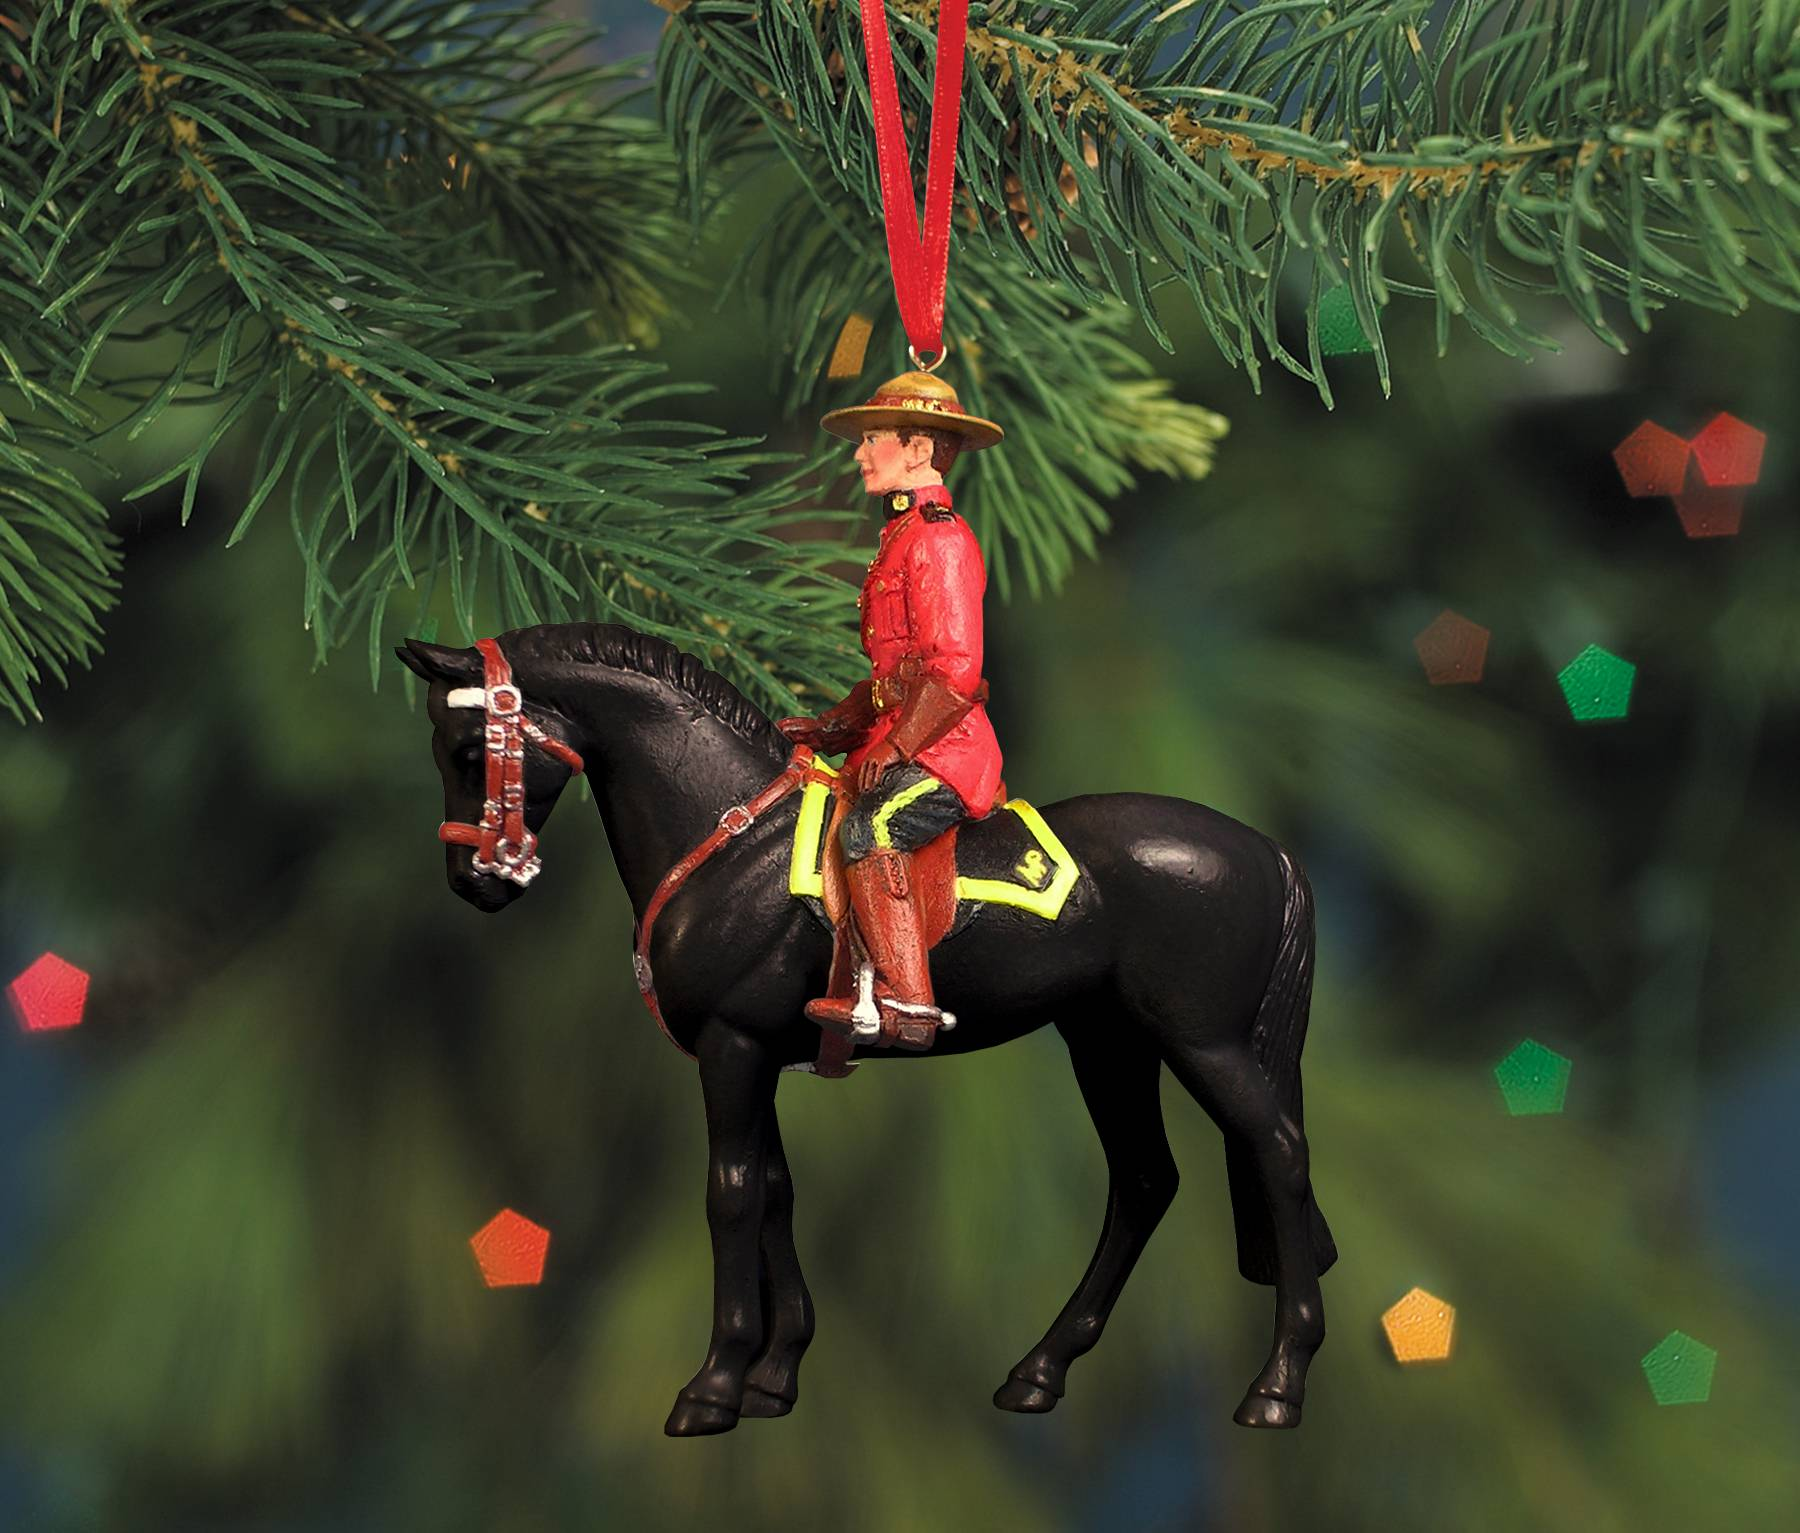 Breyer Rcmp Musical Ride Ornament